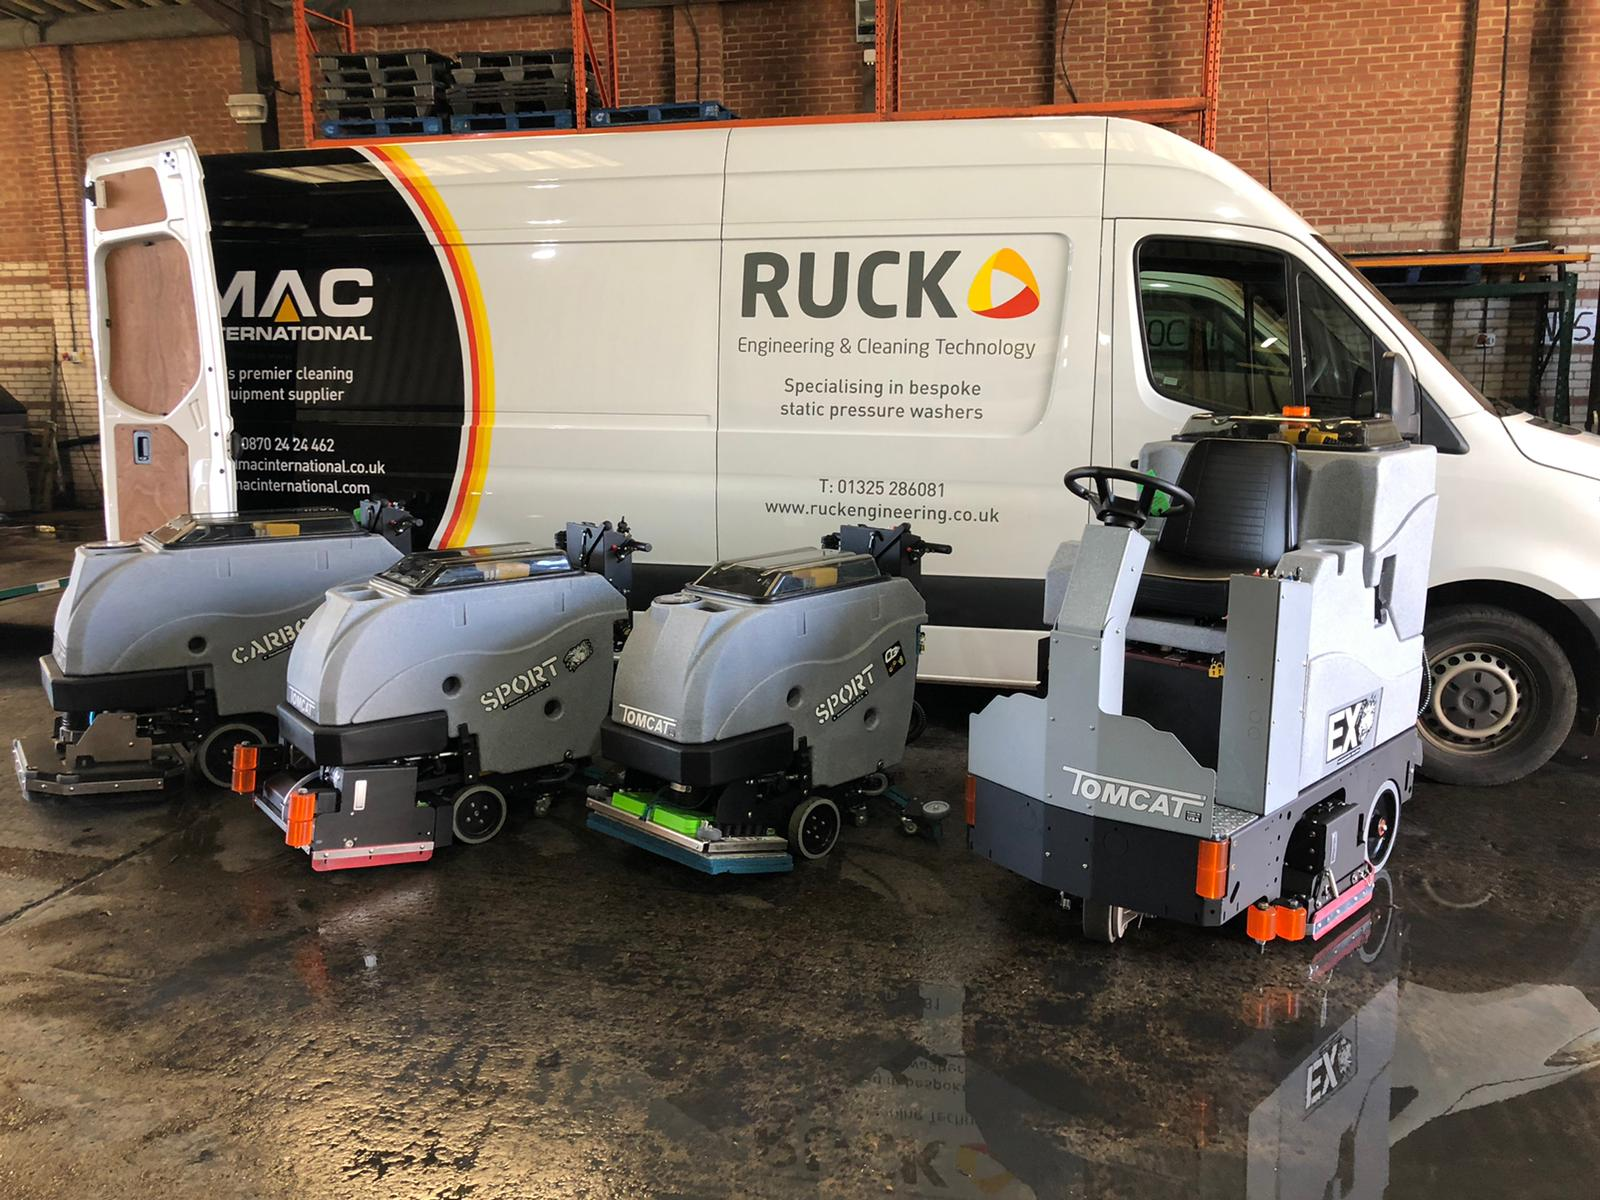 Ruck Engineering Supplying Cleaning Machines throughout the North East